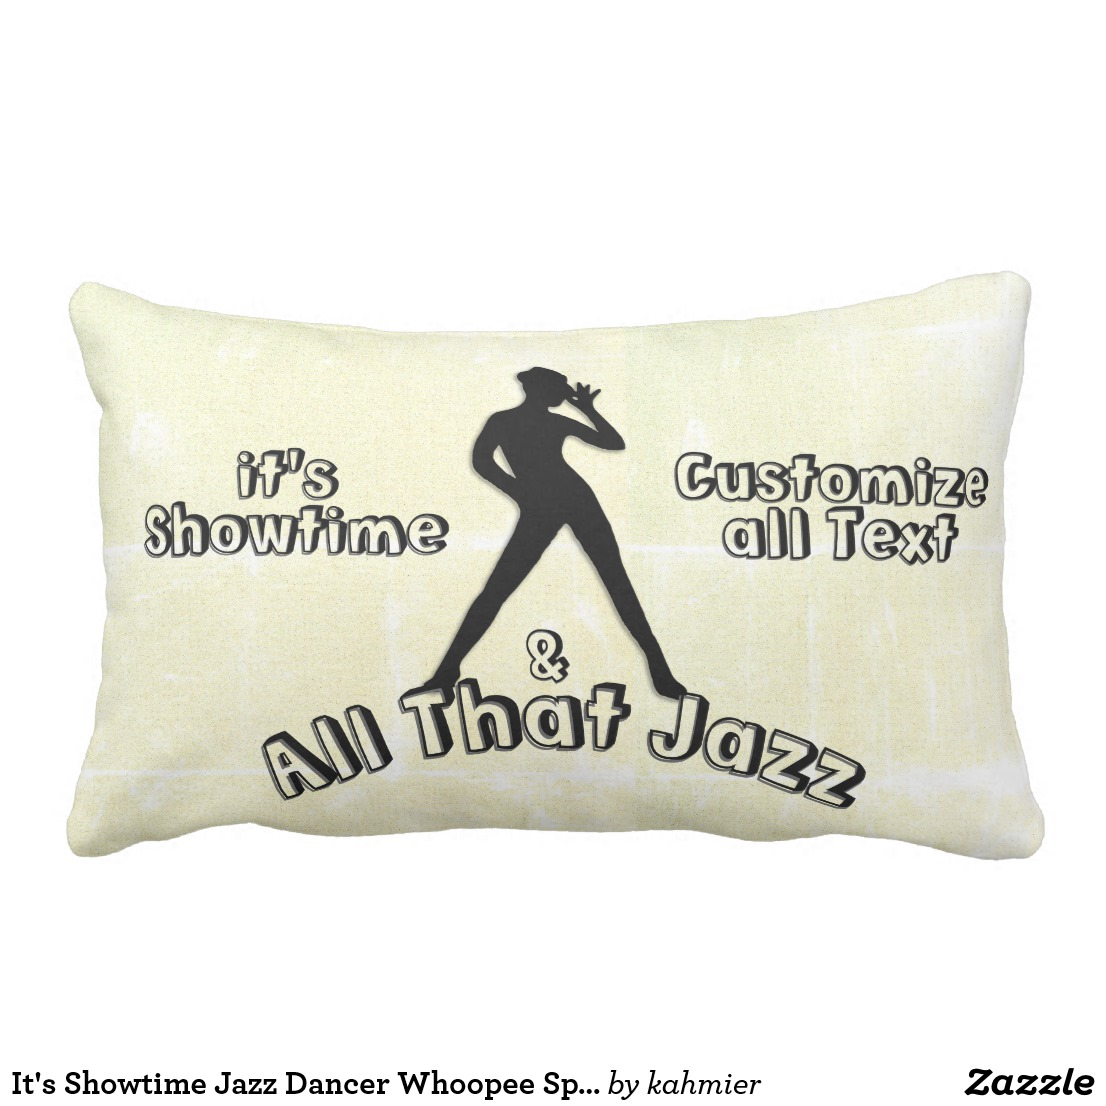 It's Showtime Jazz Dancer Whoopee Spot Cushion